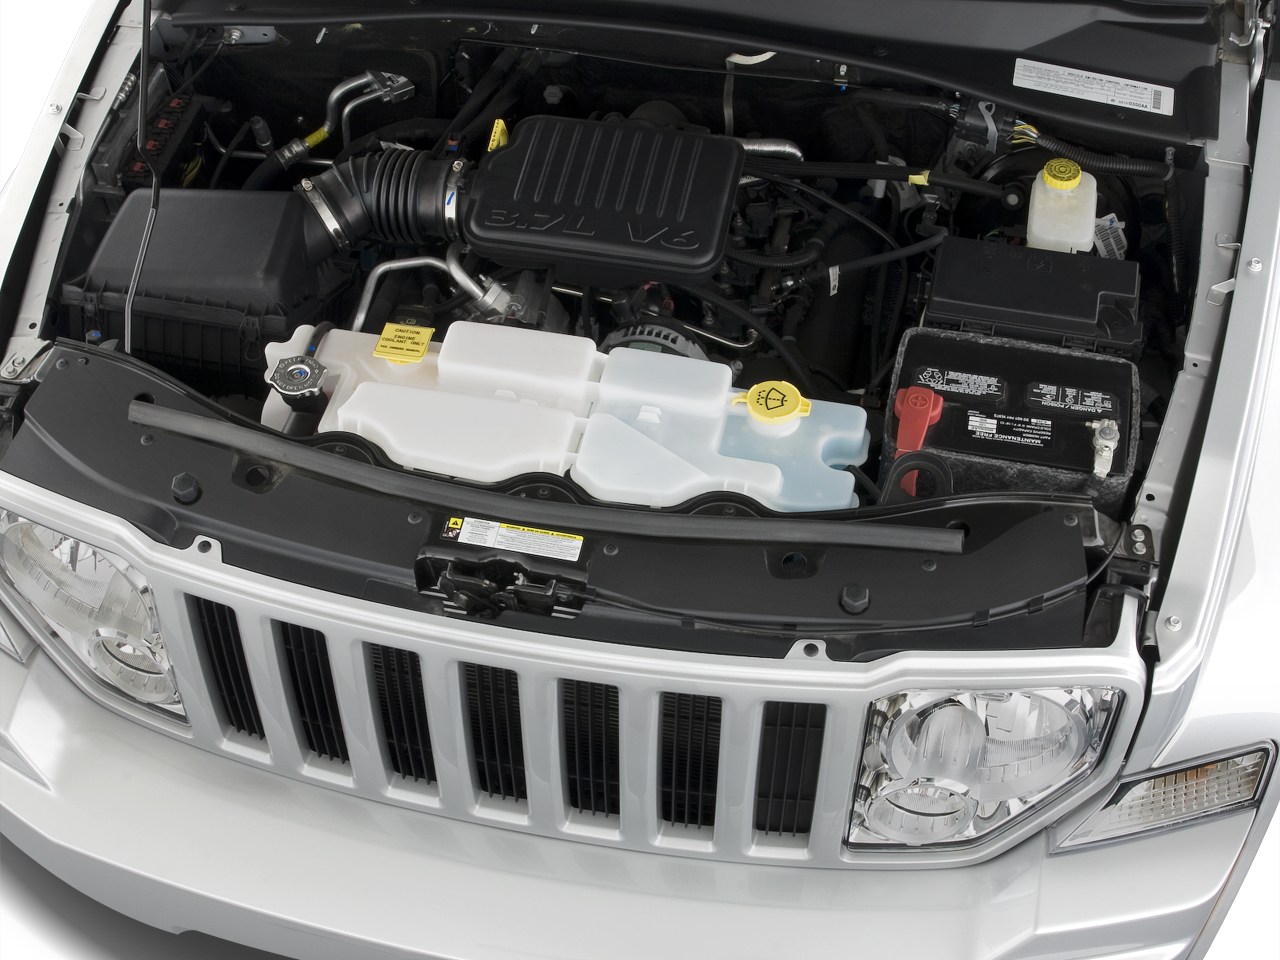 2010 Jeep Liberty Temperature Control Motor Removal on jeep grand cherokee starter wiring diagram